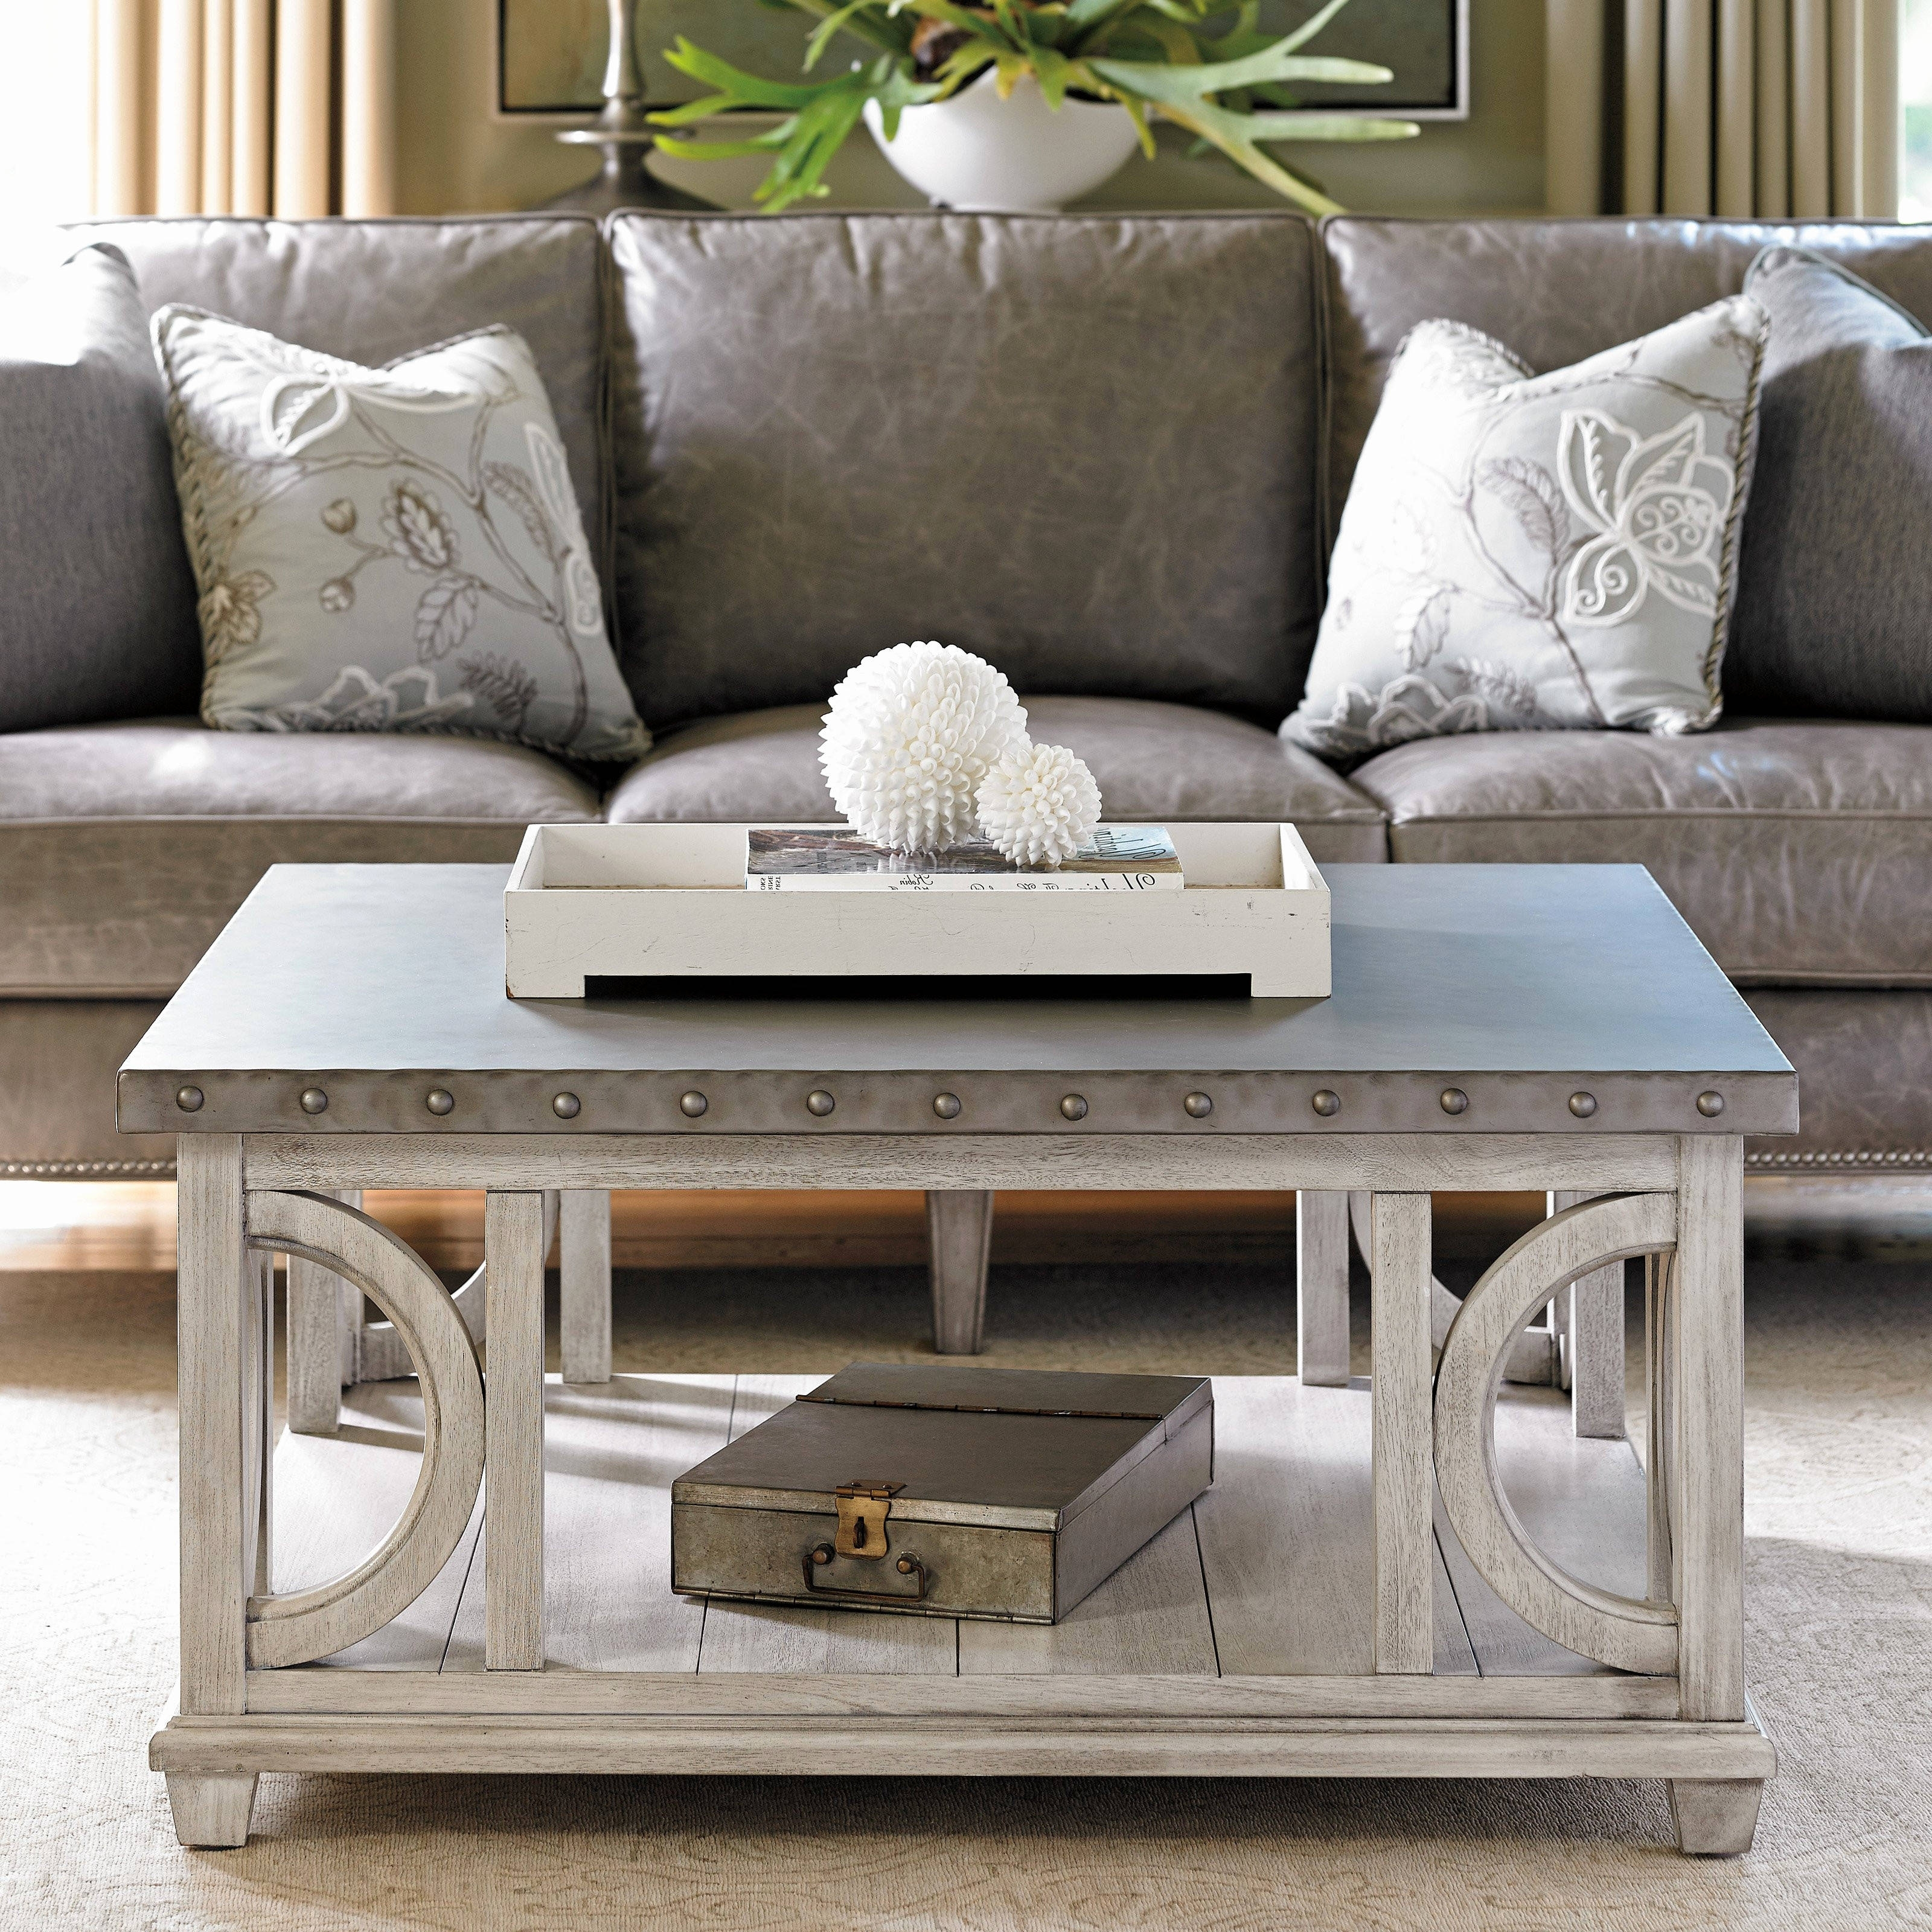 Current Magnolia Home Iron Trestle Cocktail Tables Regarding Joanna Gaines Coffee Table Best Of Magnolia Home Iron Trestle (View 17 of 20)